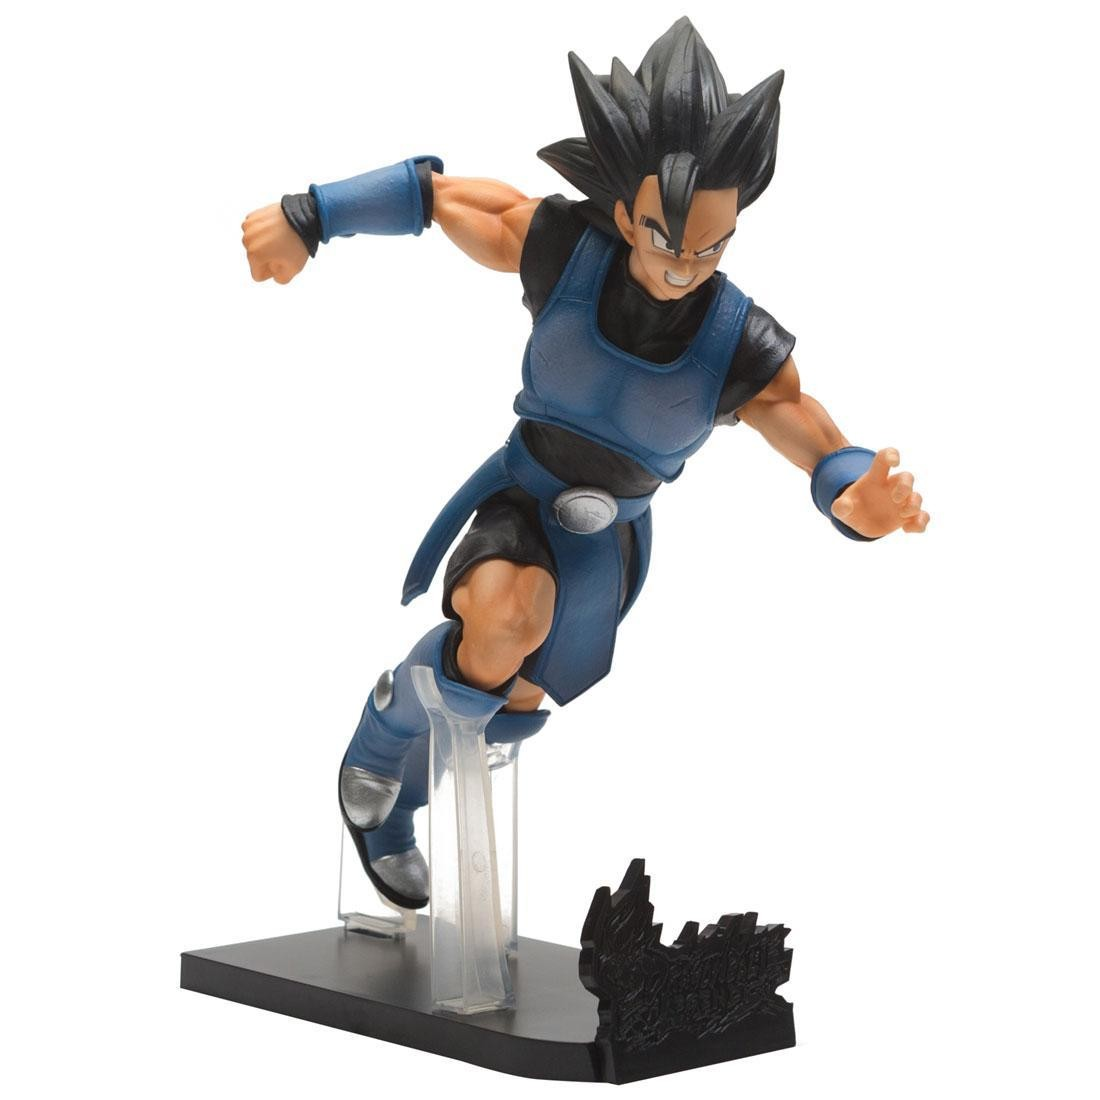 Banpresto Dragon Ball Super Legend Battle Super Saiyan Shallot Figure (black)